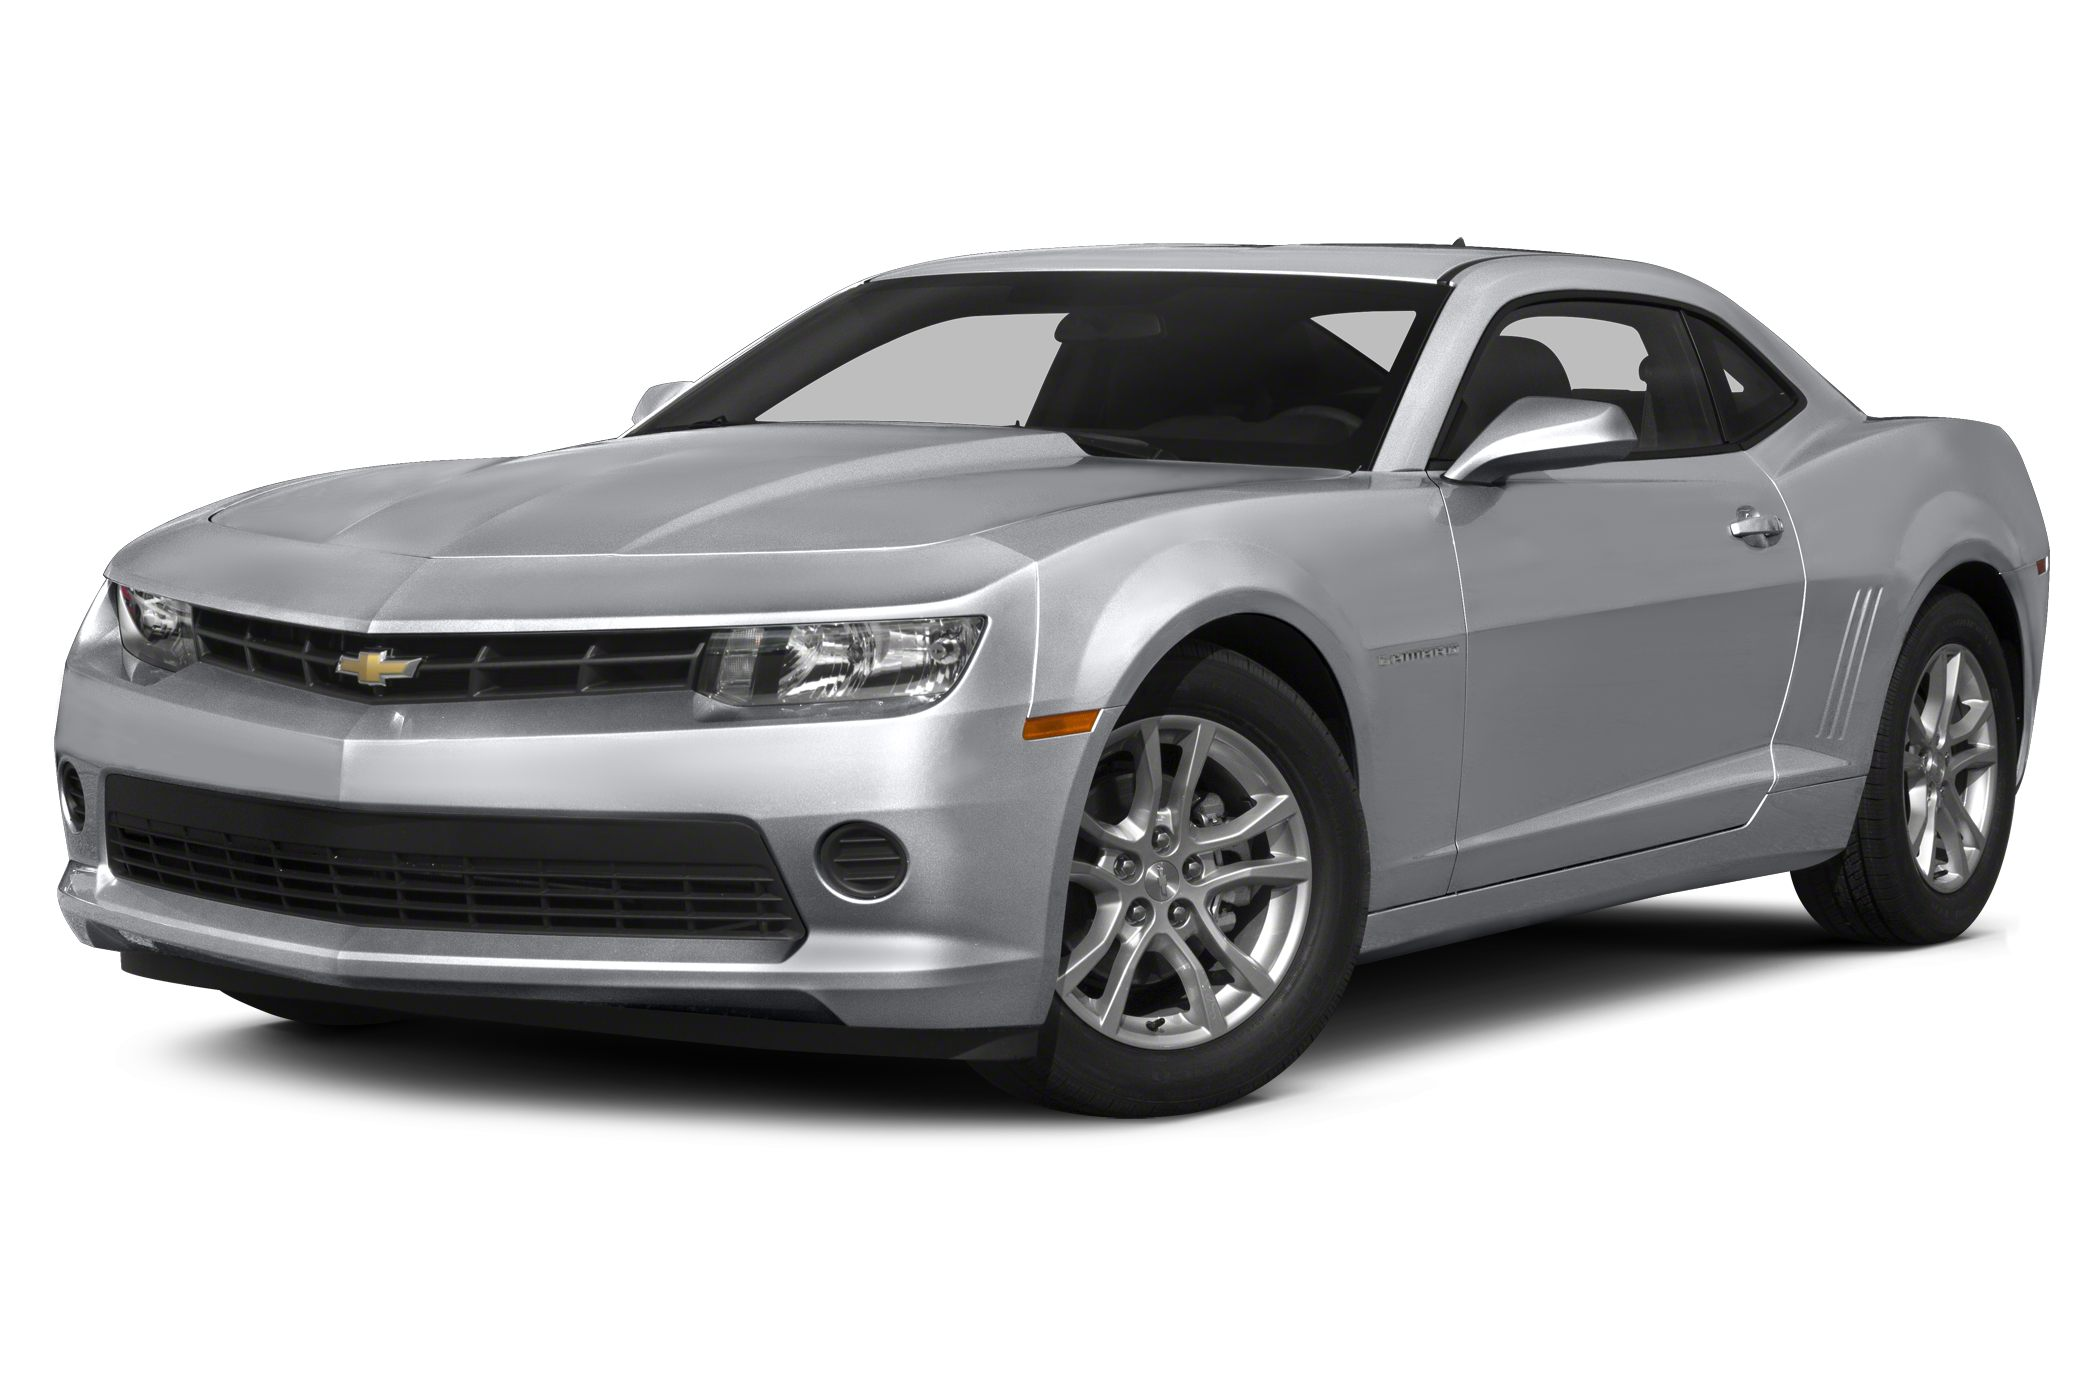 2015 Chevrolet Camaro 2LT Coupe for sale in Tifton for $36,195 with 0 miles